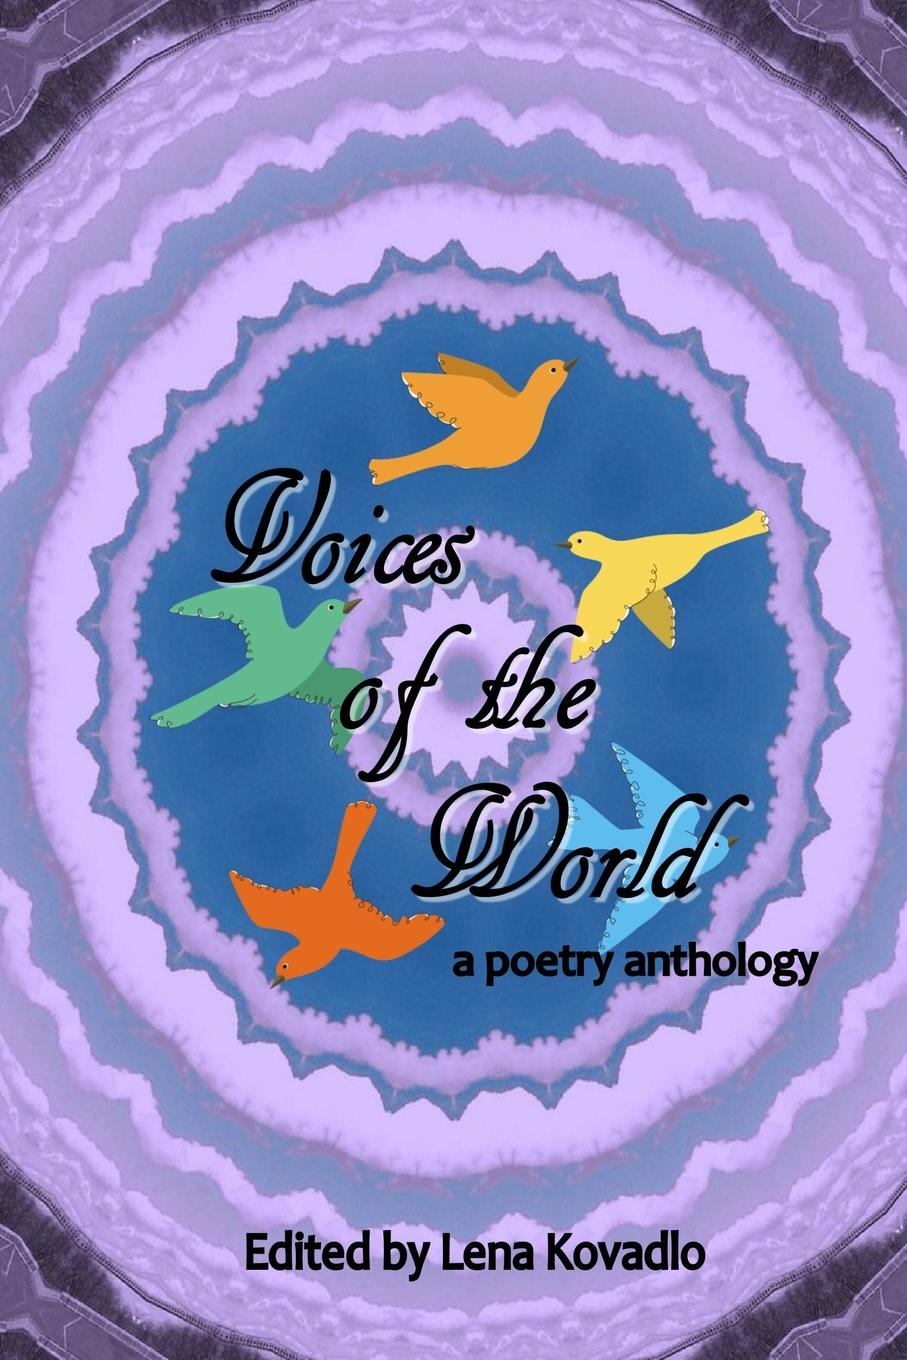 Lena Kovadlo Voices of the World - a poetry anthology do chong poep sa cold heart thawing the zen poetry of do chong an anthology of poetry about living in the modern world